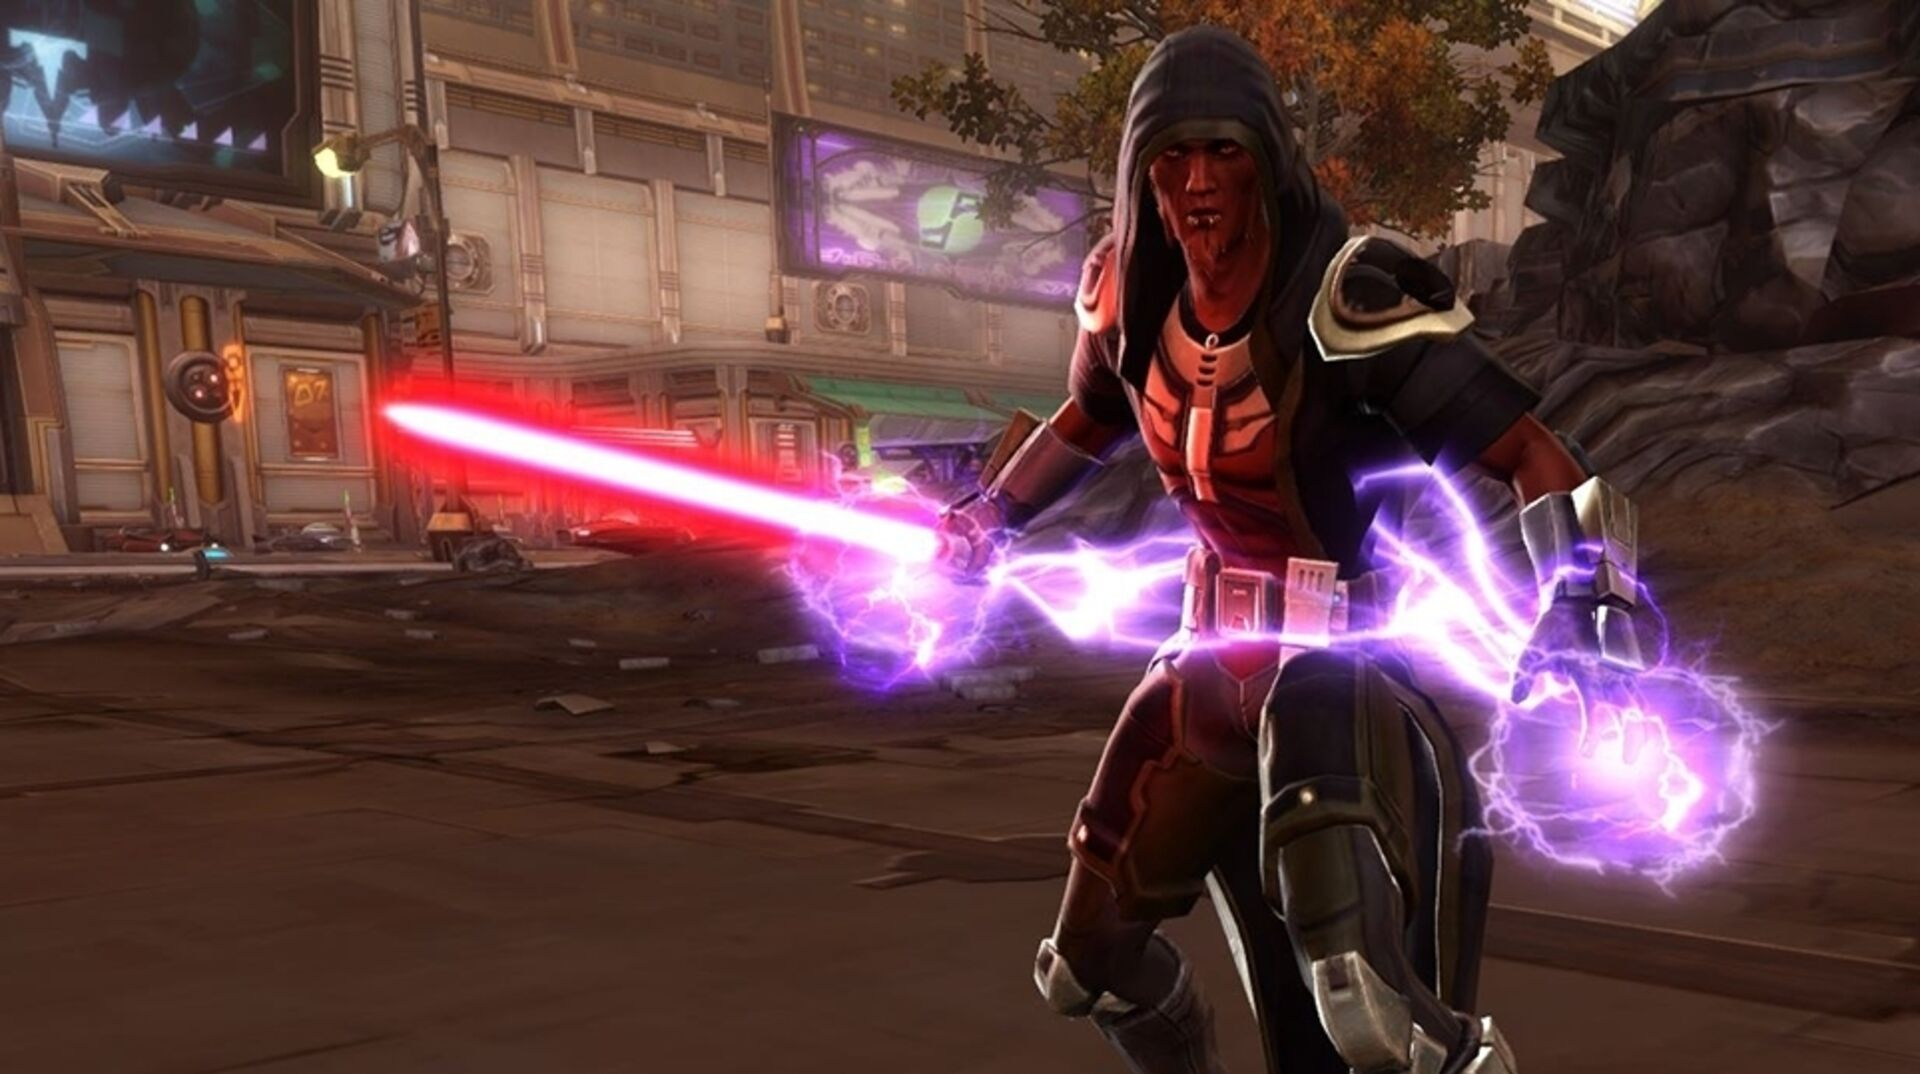 A new expansion, Onslaught, is coming to Star Wars: The Old